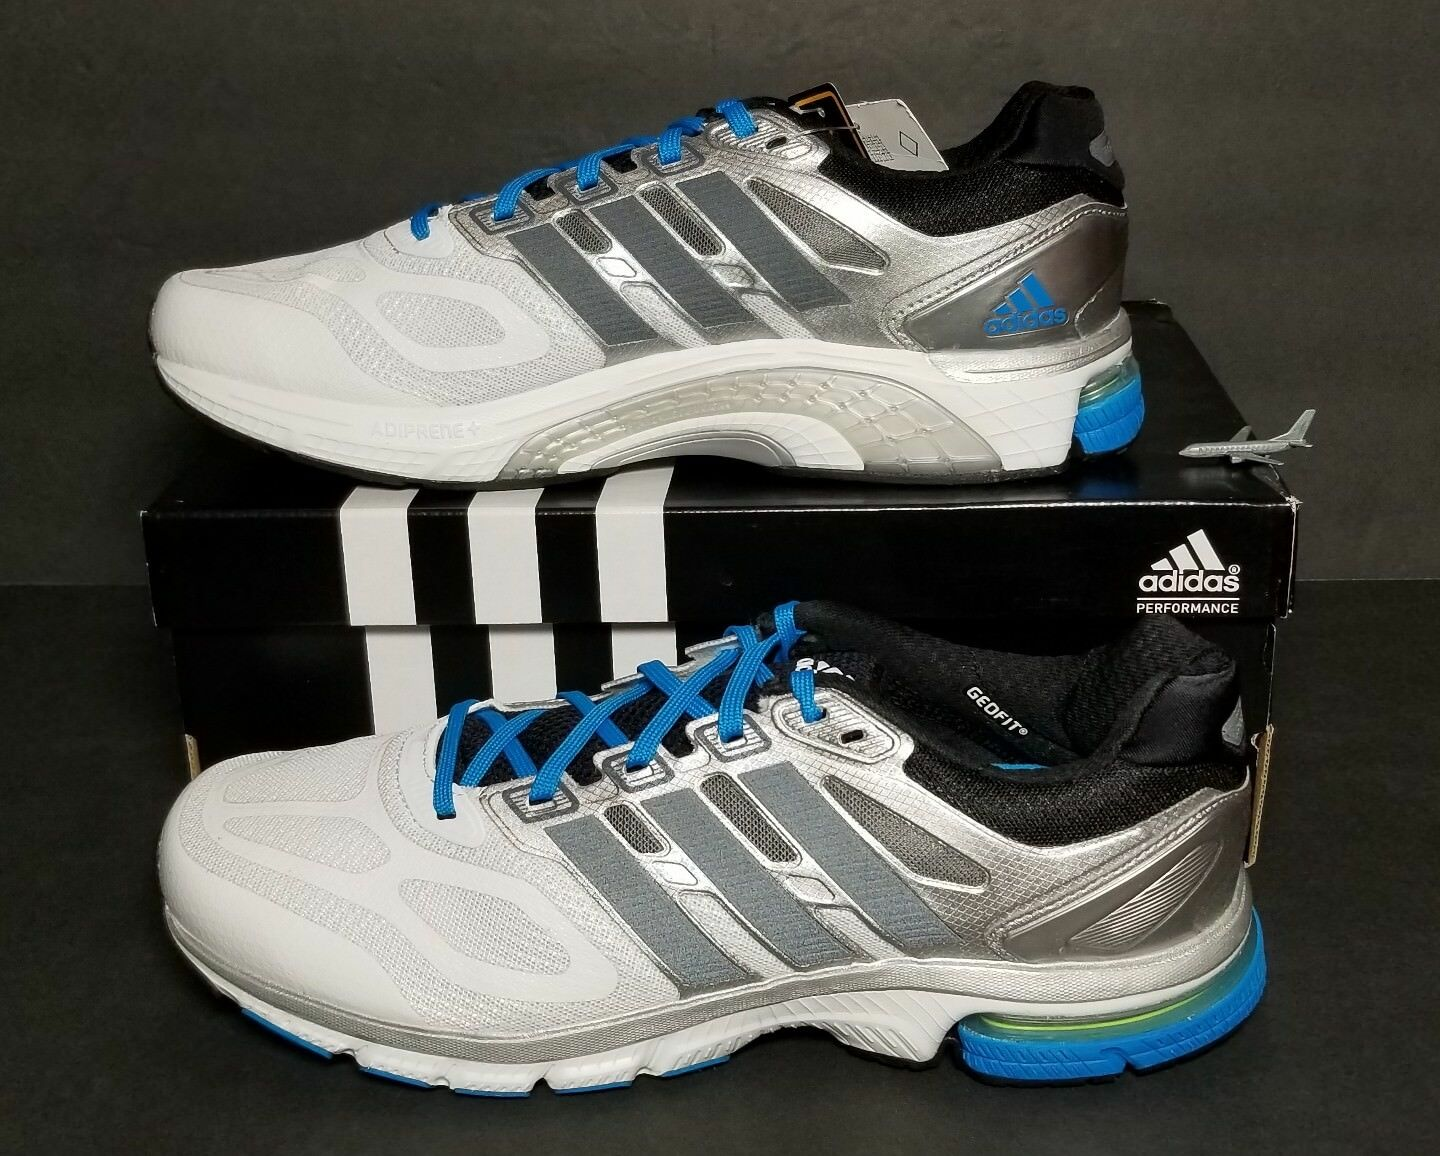 ADIDAS SUPERNOVA SEQUENCE 6M MEN'S MULTIPLE SIZE NEW IN BOX  D66755